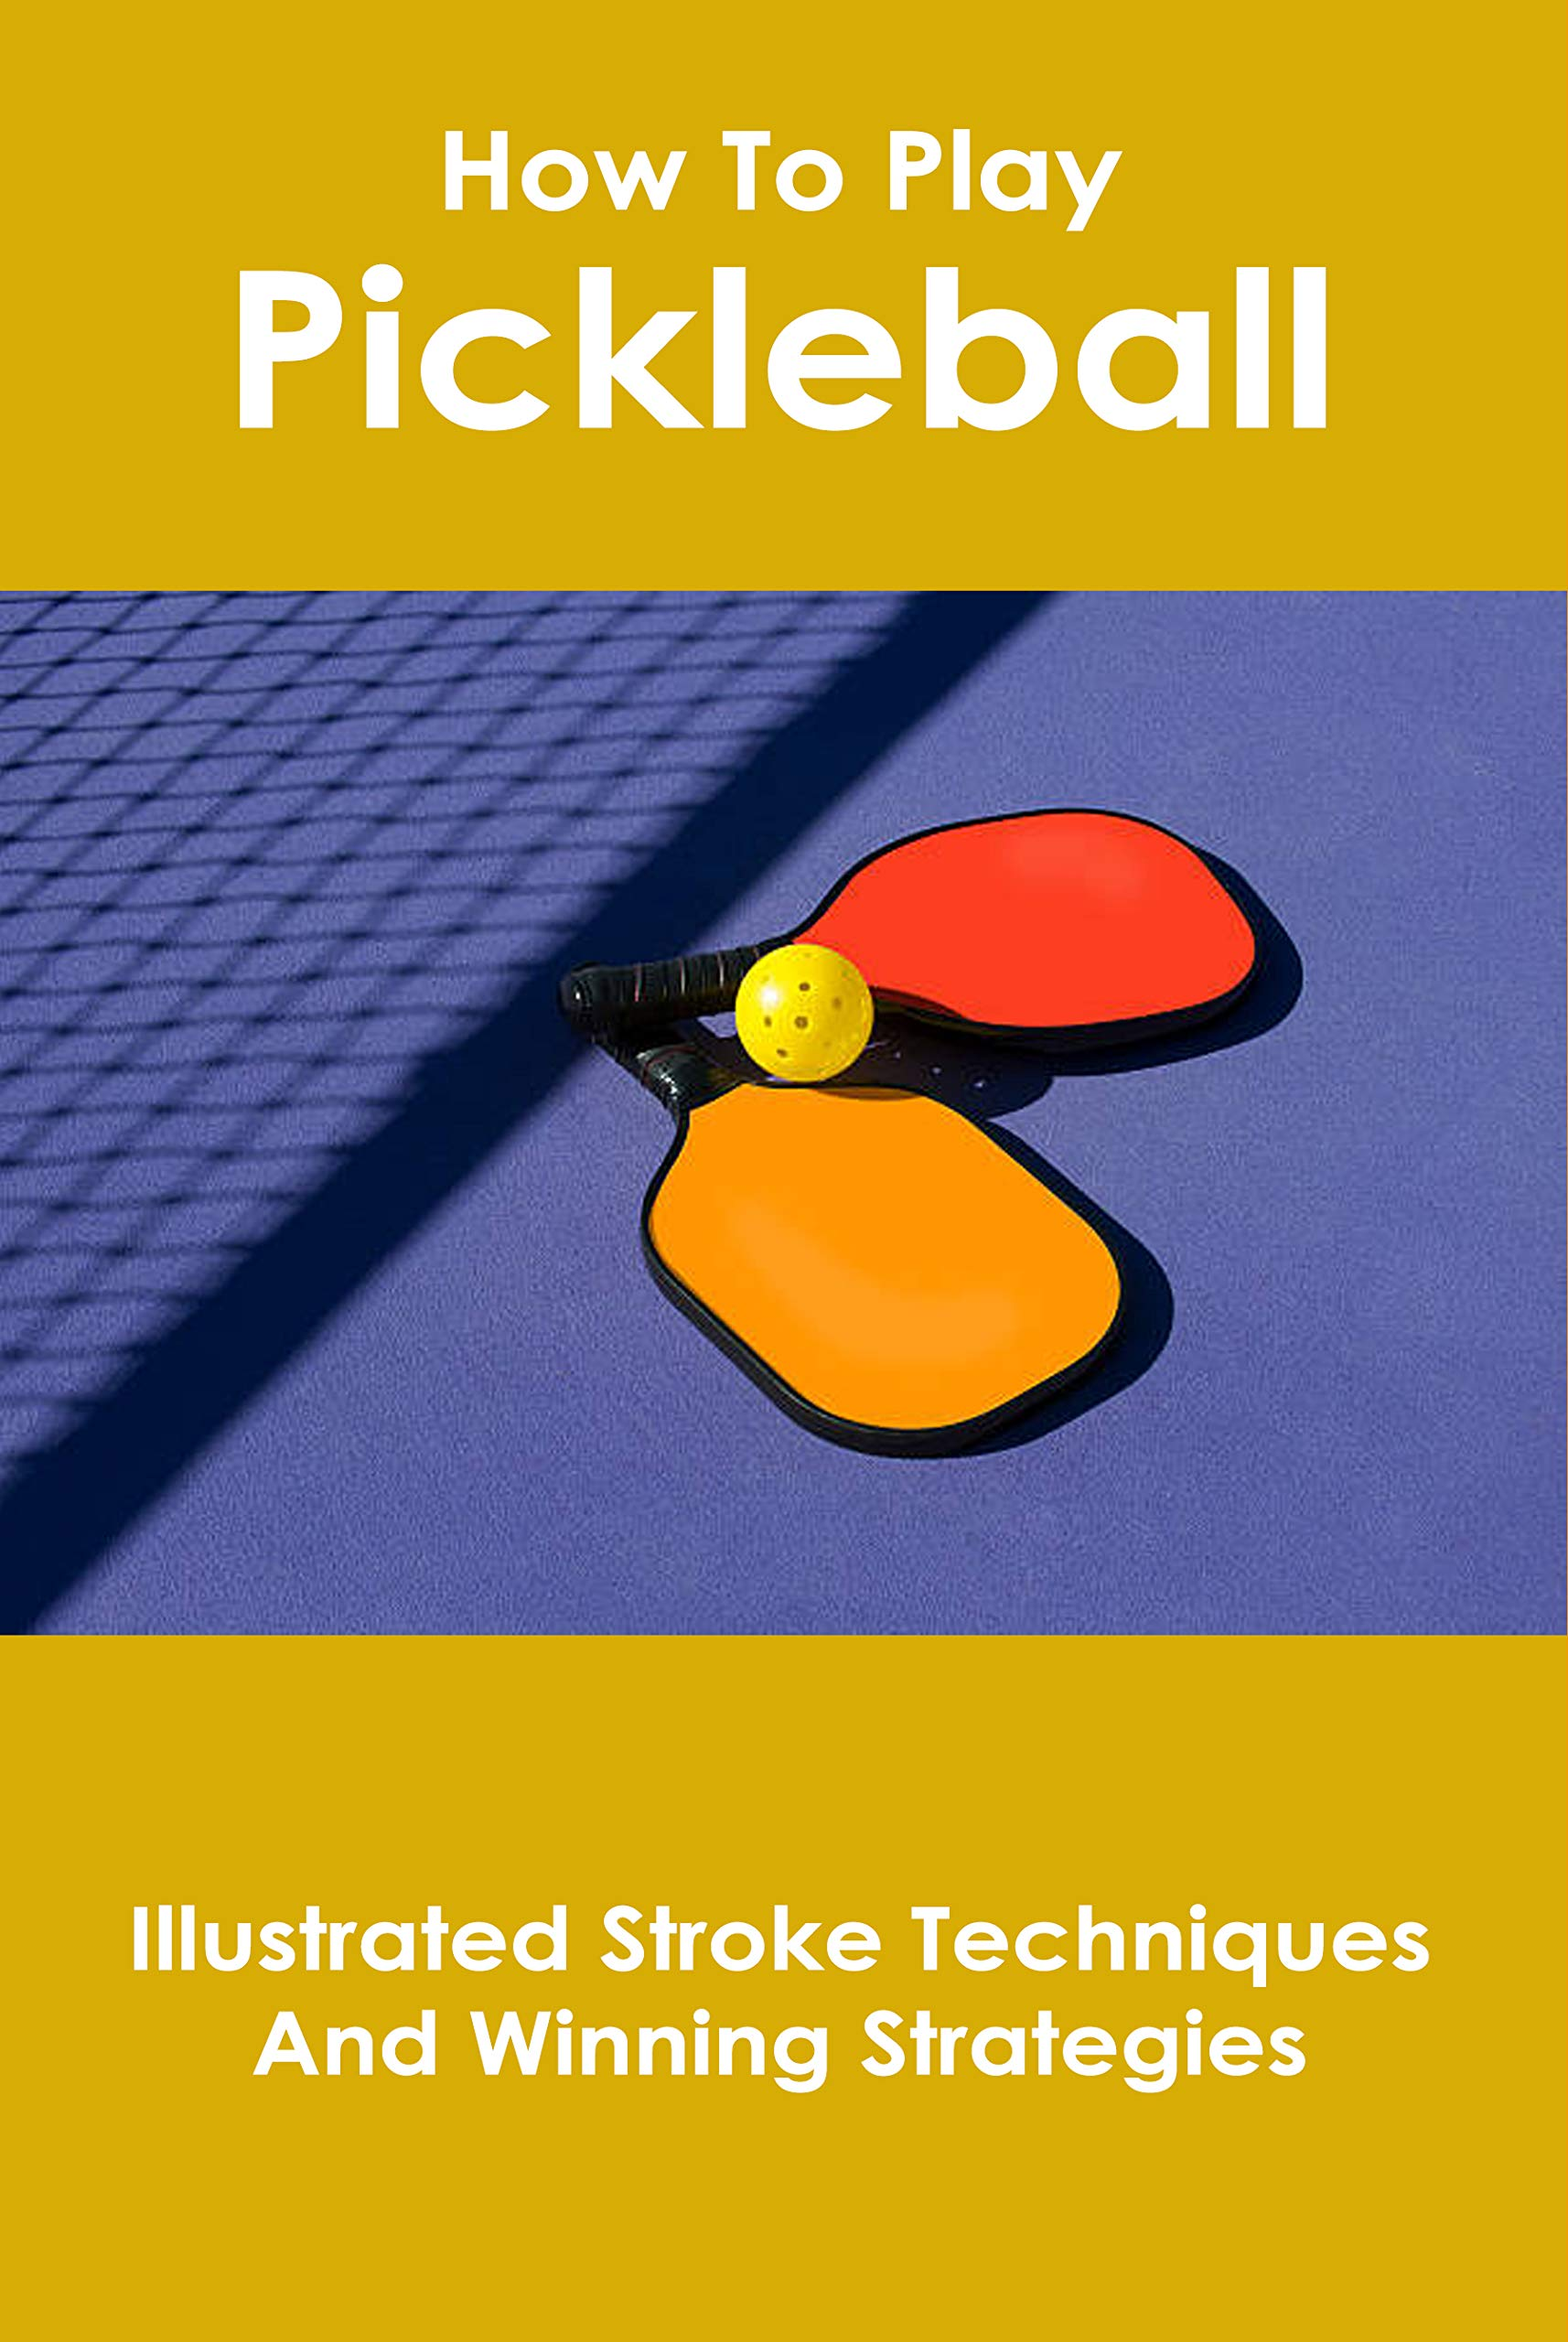 How To Play Pickleball: Illustrated Stroke Techniques And Winning Strategies: Pickleball Rulebook 2019